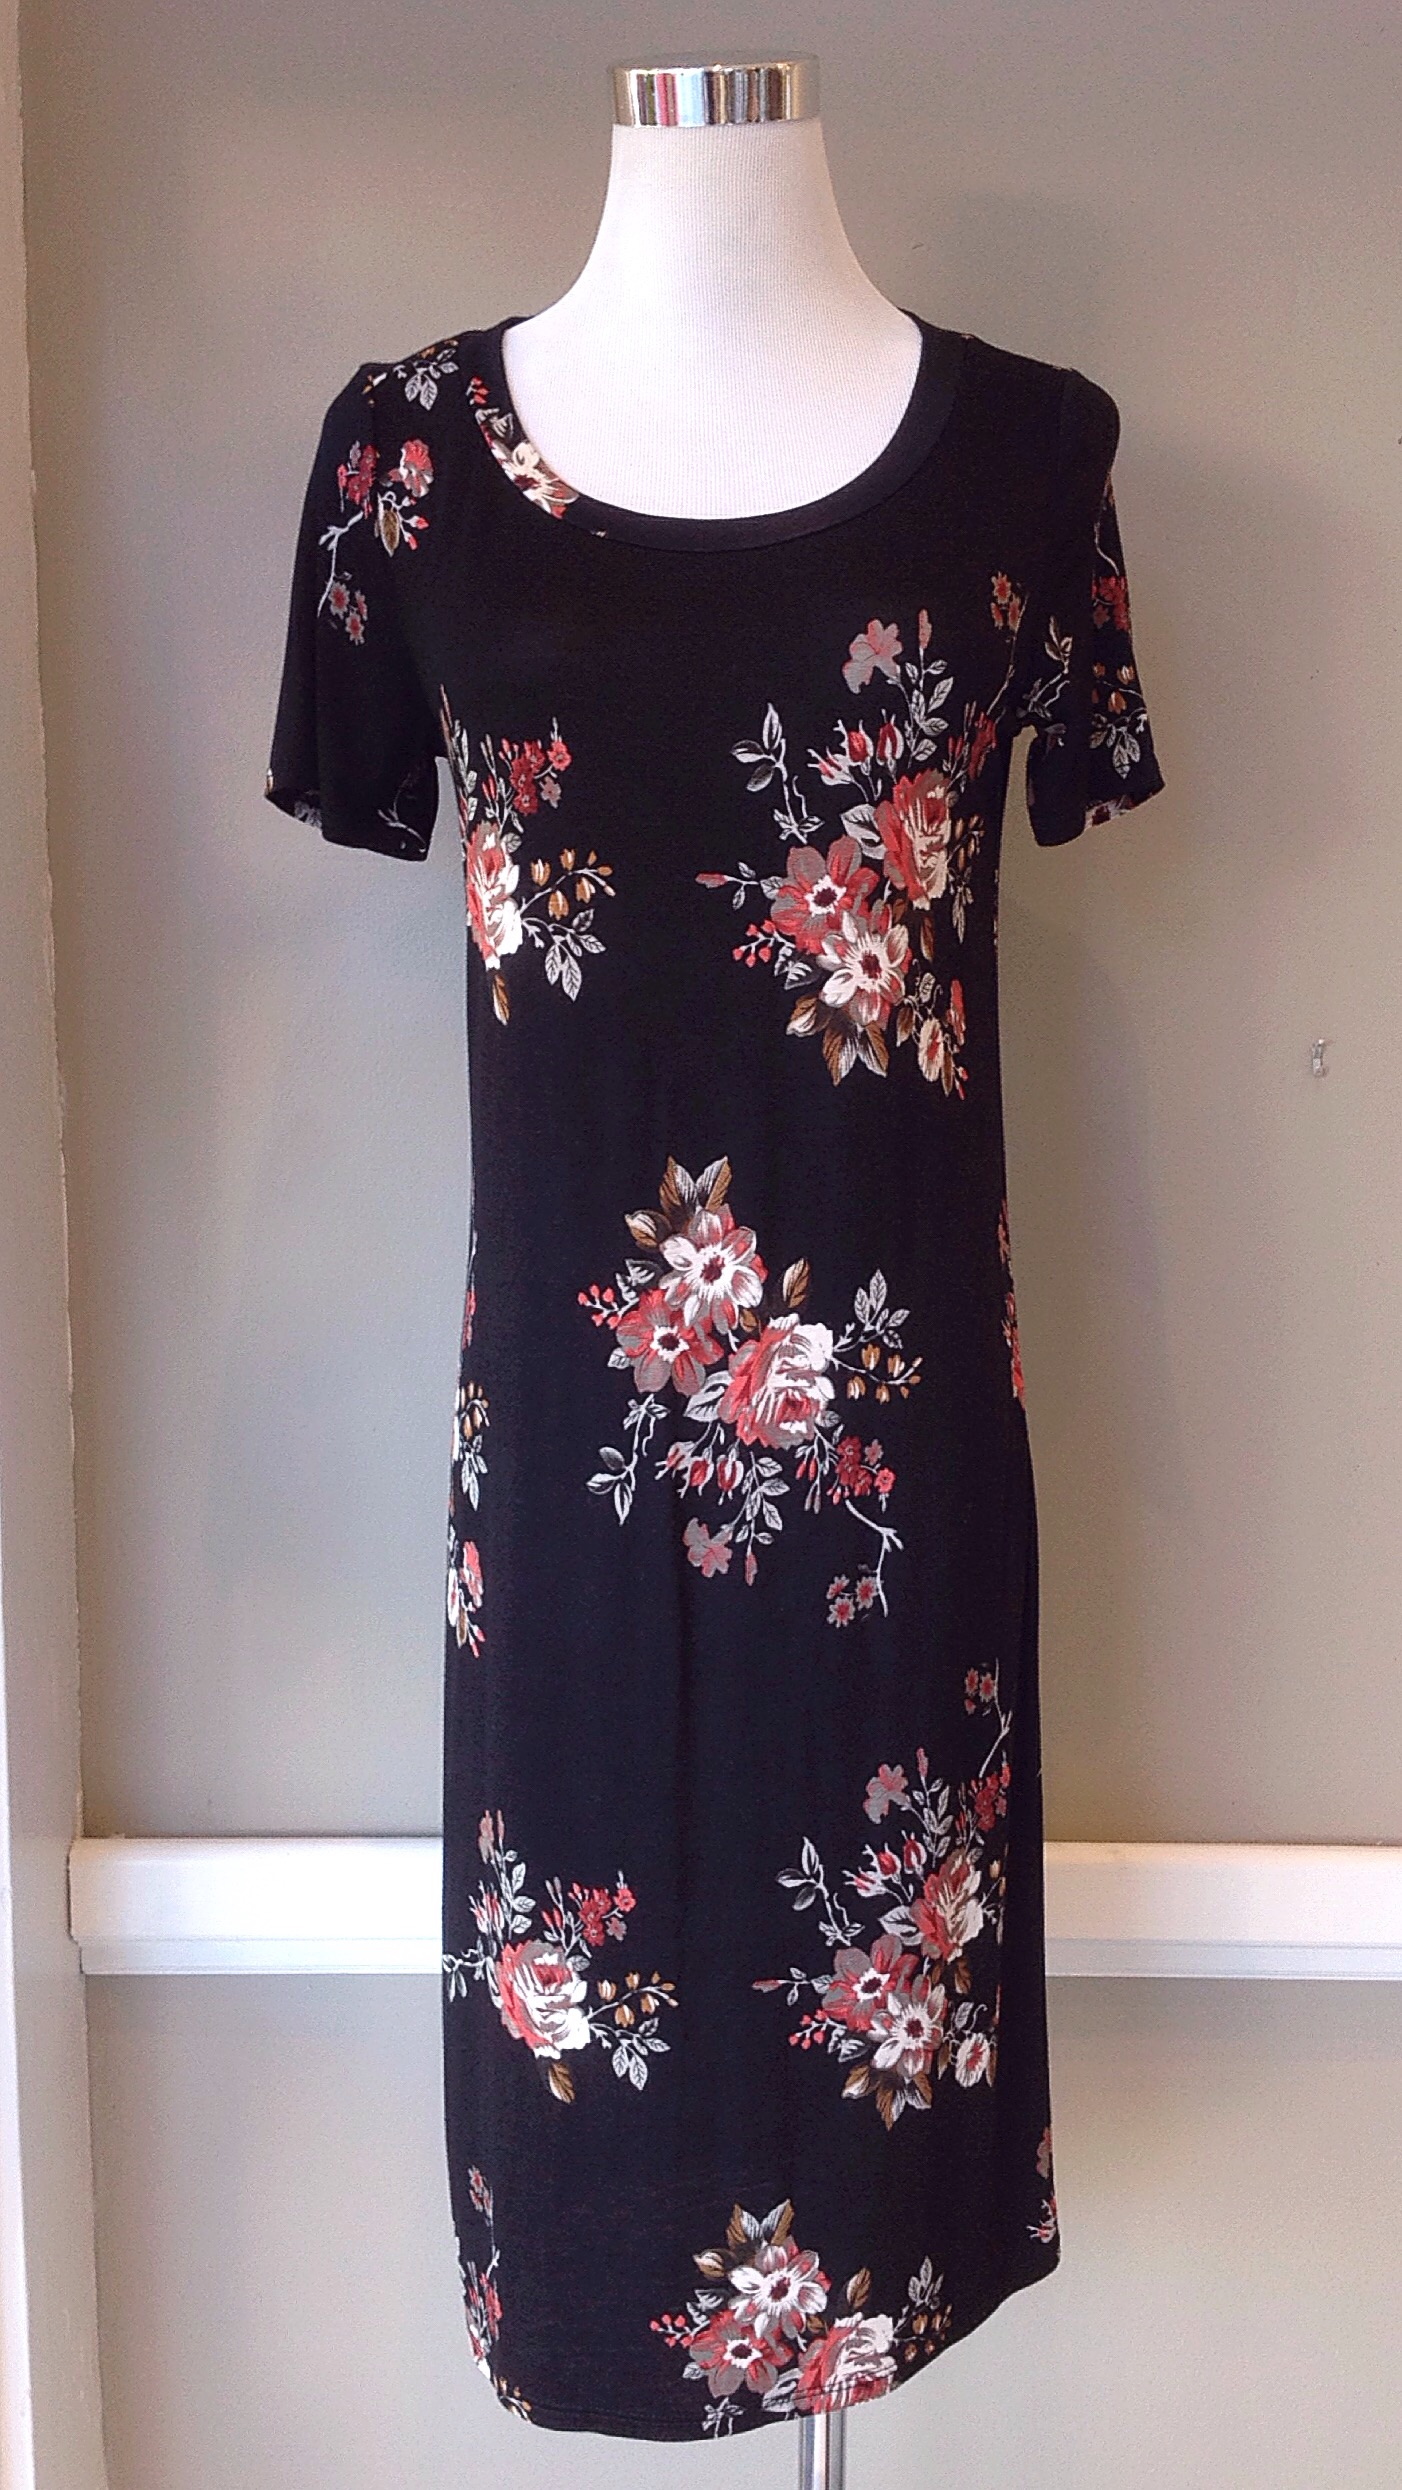 Floral jersey knit midi dress in black/multi, $35